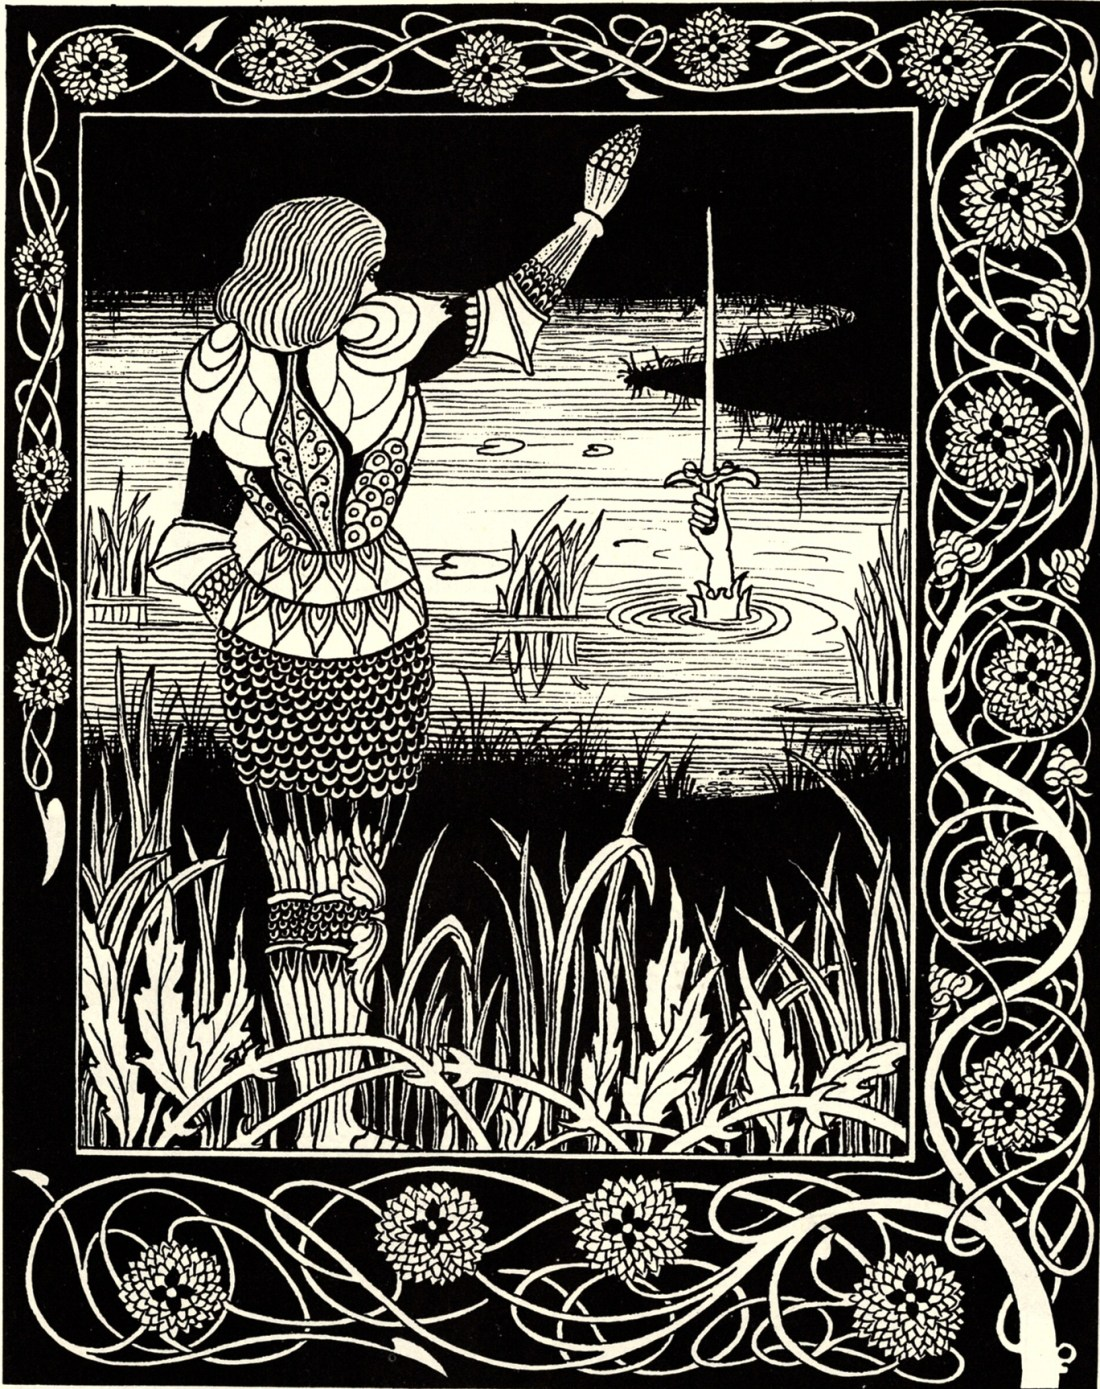 How Sir Bedivere Cast the Sword Excalibur into the Water. © 1894 Sir Thomas Malory, Le Morte d'Arthur https://commons.wikimedia.org/wiki/File:Bedivere.jpg